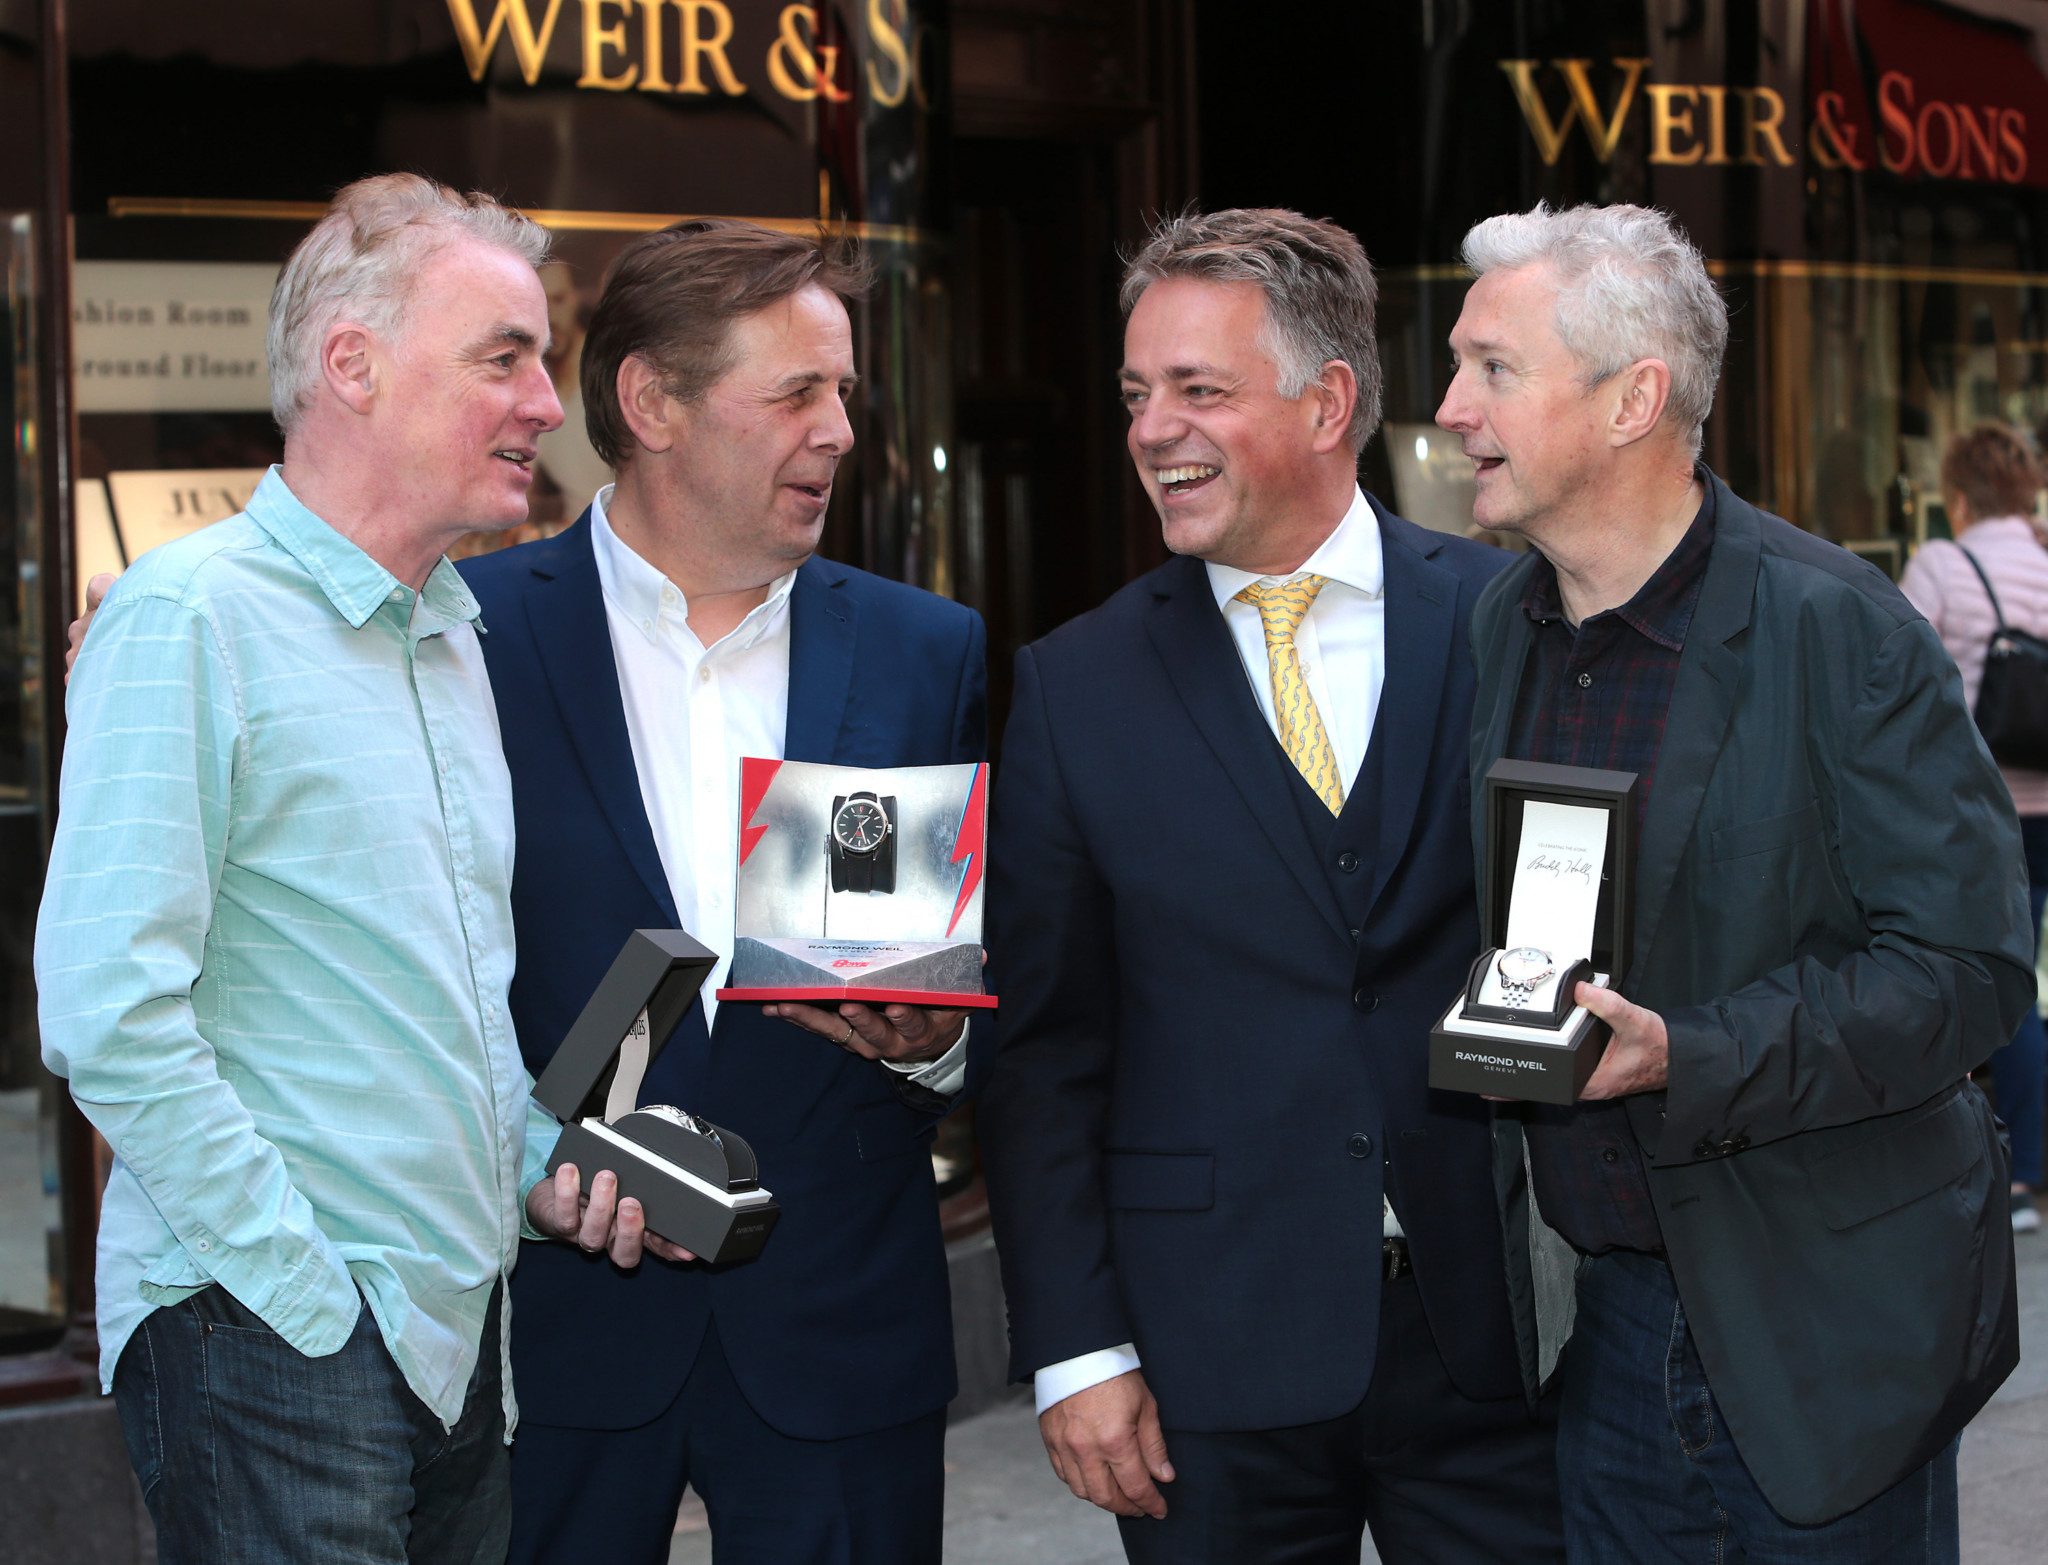 """Craig Leach, Brand Director of RAYMOND WEIL (Third from Left) presents  Dave Fanning  with his  Raymond Weil  Limited Edition  Maestro 'The Beatles """"Abbey Road"""" watch,Louis Walsh with his  Raymond Weil  Limited Edition maestro watch which pays tribute to legendary musician Buddy Holly and  Ian Dempsey with his  Raymond Weil  Limited Edition freelancer """"David Bowie"""" watch  featuring the lightning bolt that was painted across his face which first appeared on the cover of the Aladdin Sane album in 1973 at Weirs Grafton Street ,Dublin ,  Picture Brian McEvoy No Repro fee for one use   RAYMOND WEIL CELEBRATES THE GENIUS OF THREE LEGENDARY MUSIC REPERTOIRES –  DAVID BOWIE, THE BEATLES & BUDDY HOLLY WITH THREE ICONS OF THE IRISH MUSIC INDUSTRY LOUIS WALSH, IAN DEMPSEY AND DAVE FANNING     Renowned Swiss luxury watchmaker RAYMOND WEIL is paying homage to the holy trinity of music icons David Bowie, The Beatles and Buddy Holly with the release of three exclusive limited edition timepieces.  To mark the launch of these signature pieces, Craig Leach, Brand Director of RAYMOND WEIL presented three Icons of the Irish music industry with their Hero's watches - Louis Walsh with Buddy Holly; Ian Dempsey with David Bowie and Dave Fanning with The Beatles, in Weir & Sons, Grafton Street, Dublin.     An impresario of the contemporary music scene, Louis's roots are in the guitar rifts of Buddy Holly, globally recognised as the pioneer of Rock 'n'Roll. RAYMOND WEIL in collaboration with his wife Maria Elena Holly, has designed the Limited Edition maestro which pays tribute to legendary musician Buddy Holly.     A lifelong fan of David Bowie, Ian Dempsey proved his devotion to him when as part of last year's Today FM's 'Dare To Care' campaign, he got a black star tattooed on his arm as a tribute to David Bowie whose last album was titled Black Star.RAYMOND WEIL presented Ian with the freelancer """"David Bowie"""" featuring the lightning bolt that was painted across his face which first appear"""